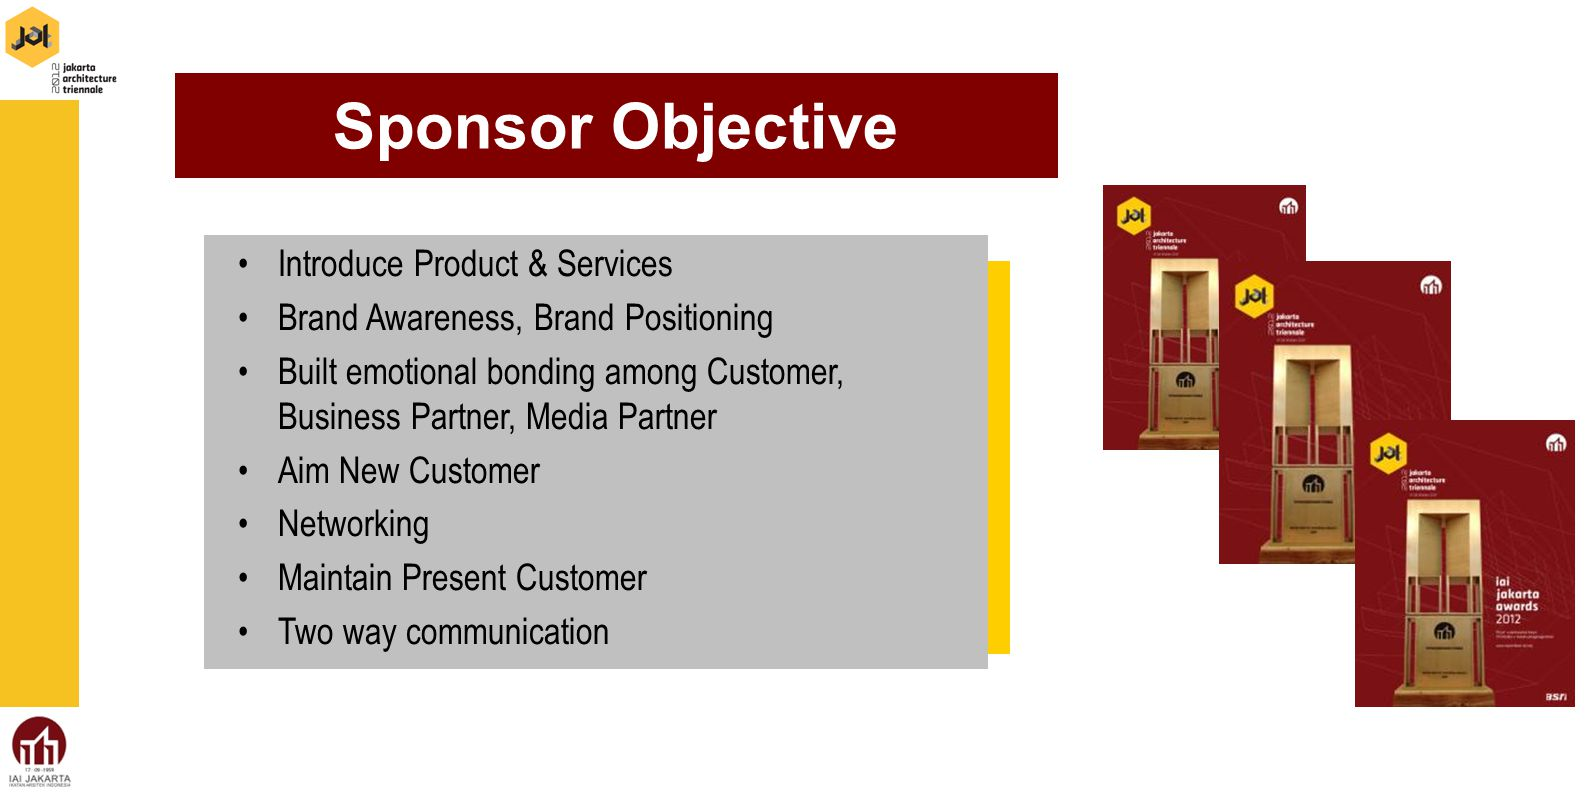 Introduce Product & Services Brand Awareness, Brand Positioning Built emotional bonding among Customer, Business Partner, Media Partner Aim New Customer Networking Maintain Present Customer Two way communication Sponsor Objective